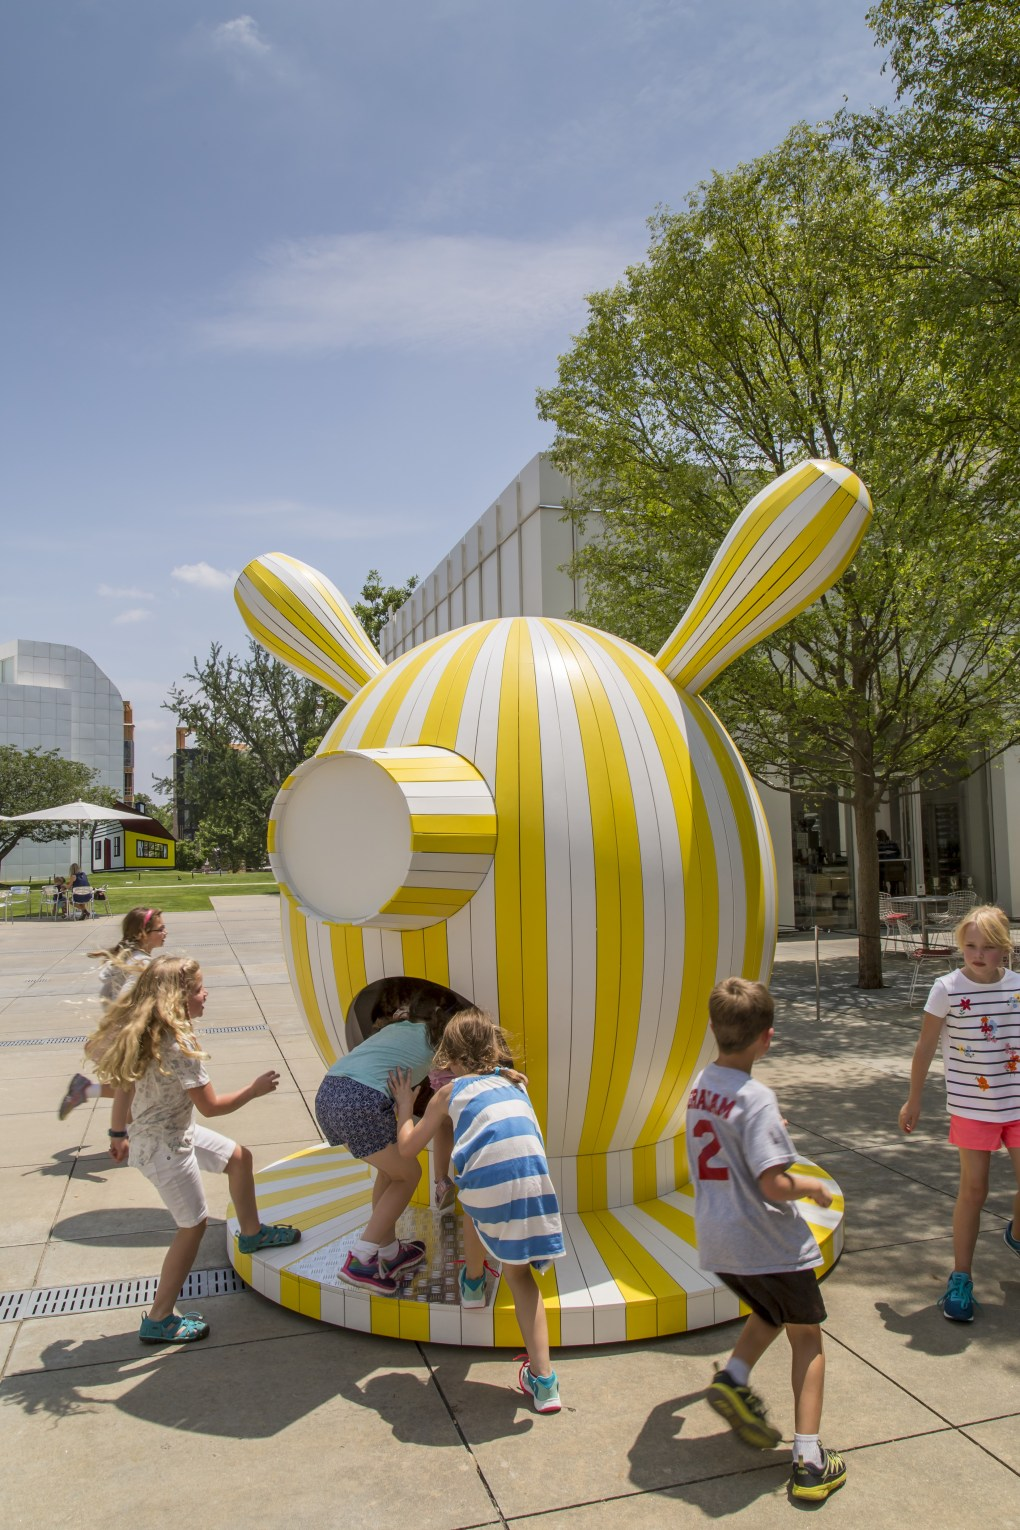 """Tiovivo: Whimsical Sculptures by Jaime Hayon"" en la Piazza Carroll Slater Sifly del High Museum of Art en Atlanta. Foto: Jonathan Hillyer."